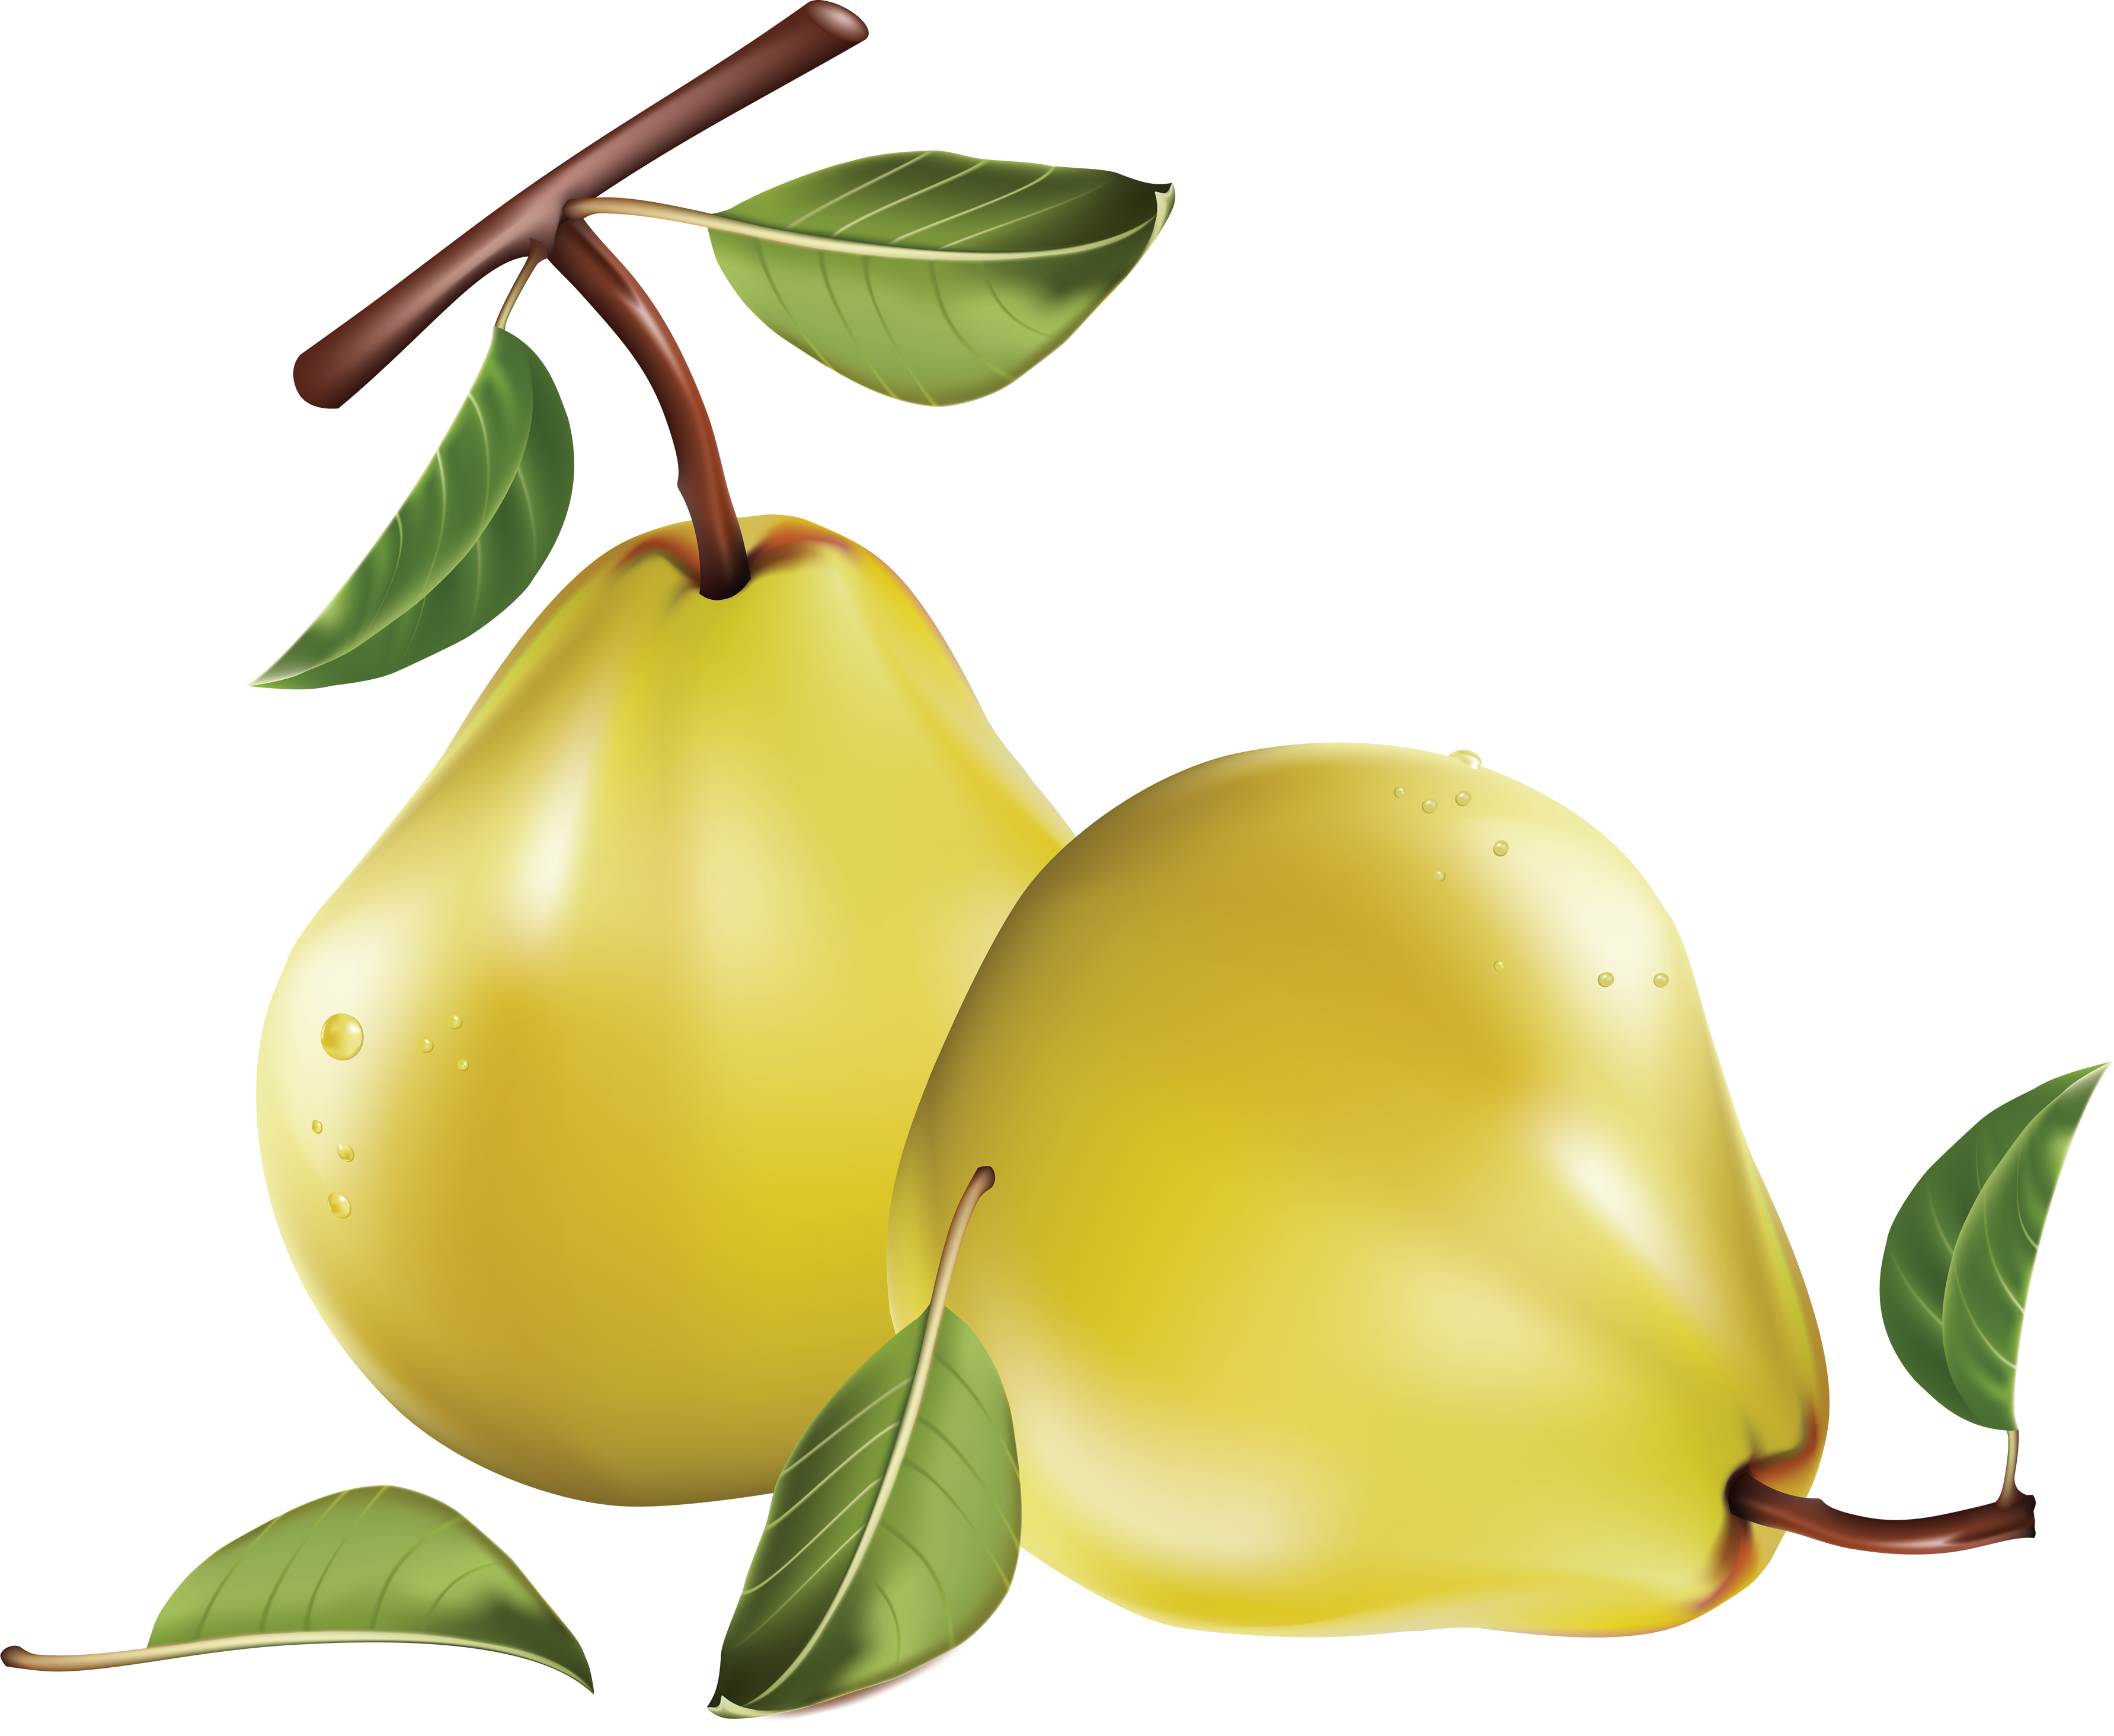 Pear PNG images free download